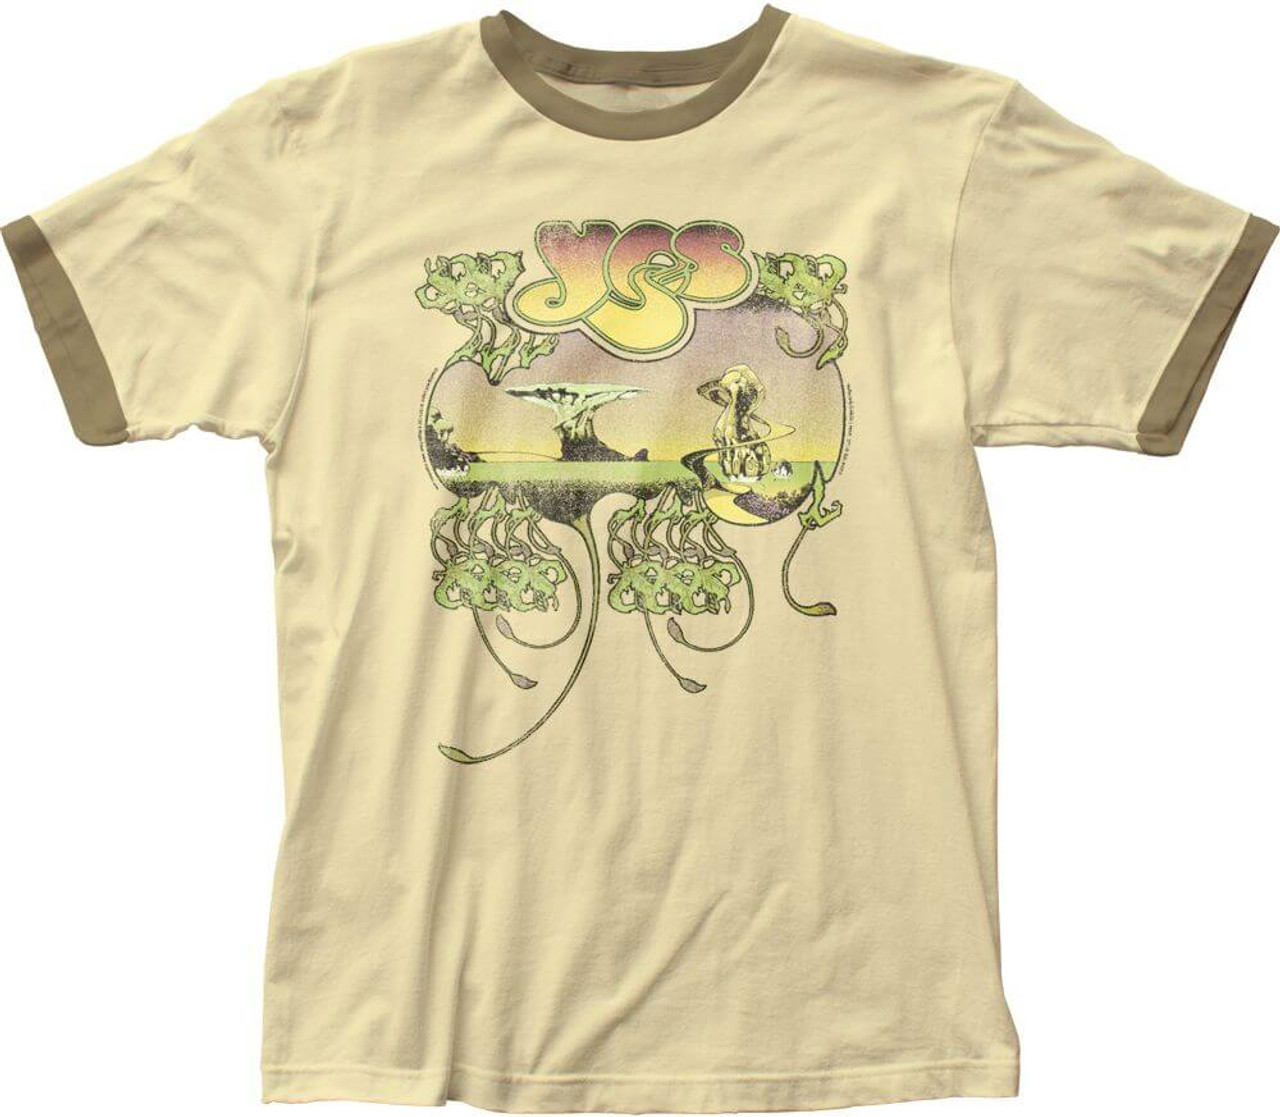 Amazon.com: YES - FRAGILE Album Cover - Adult T-Shirt: Clothing